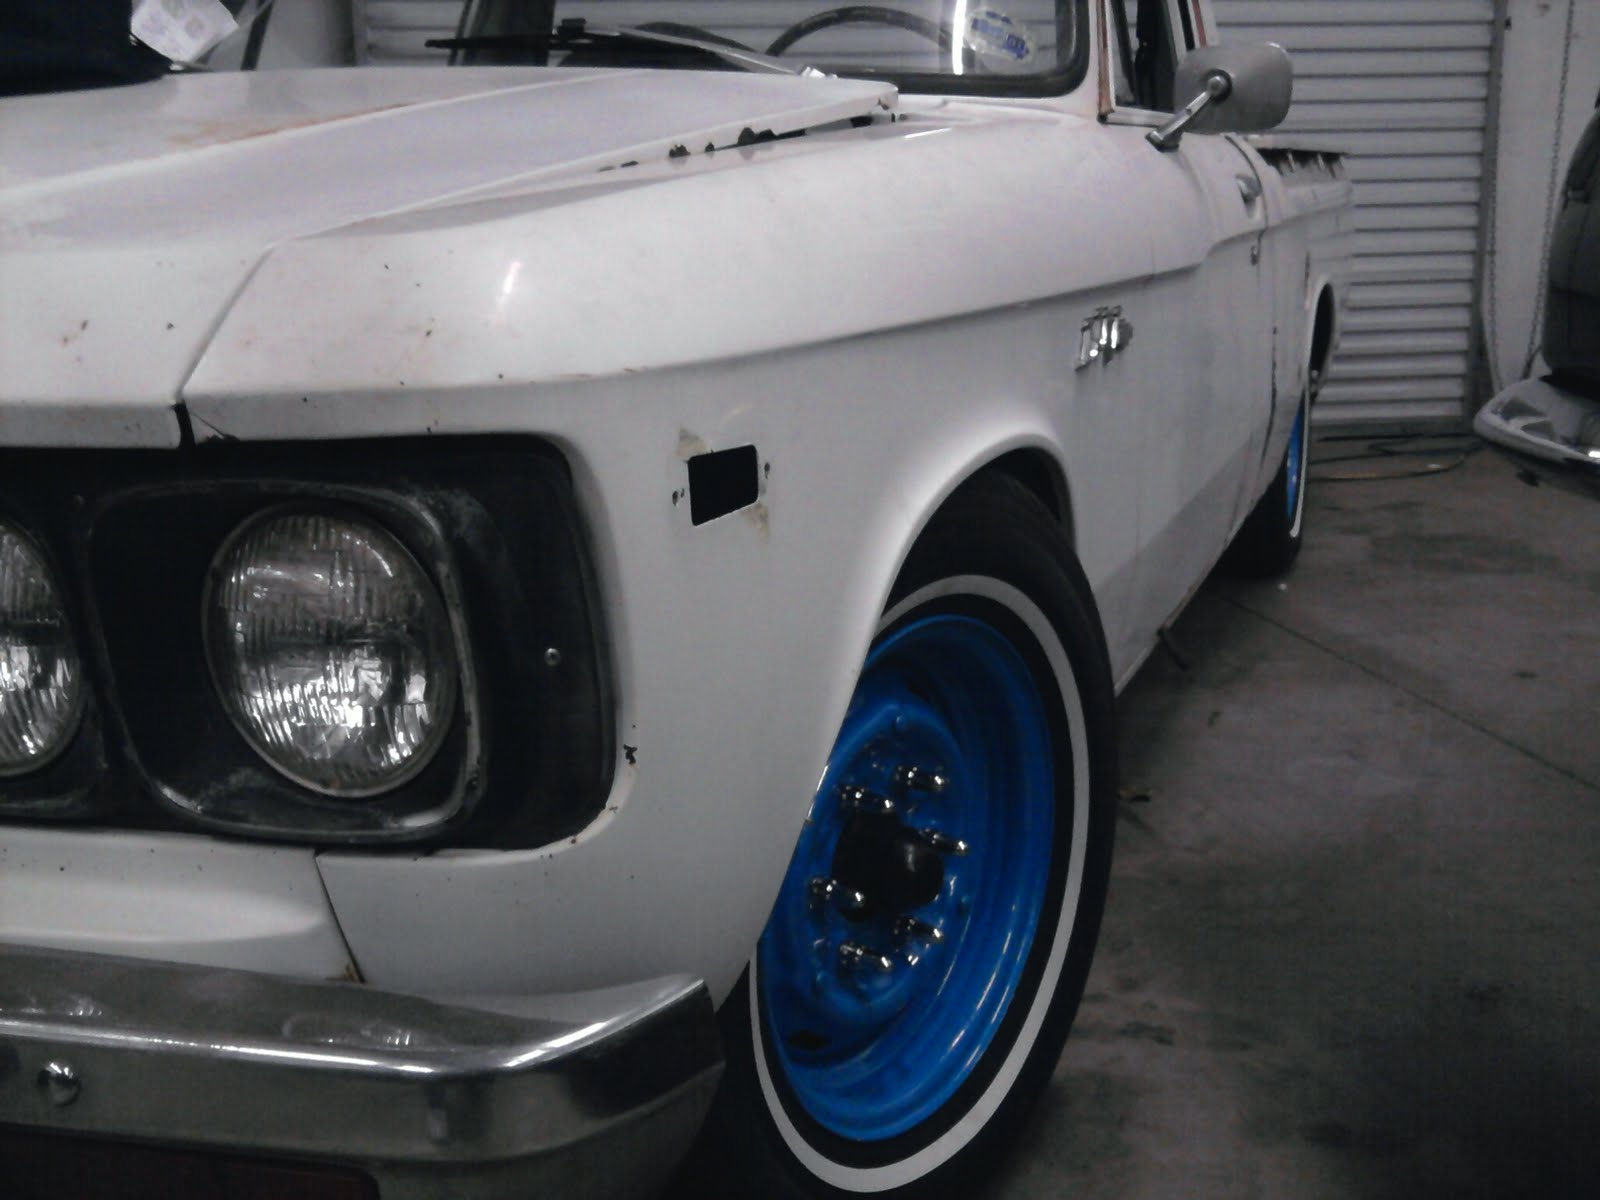 Queen City Speed  77 Chevy Luv 4 3 Swap